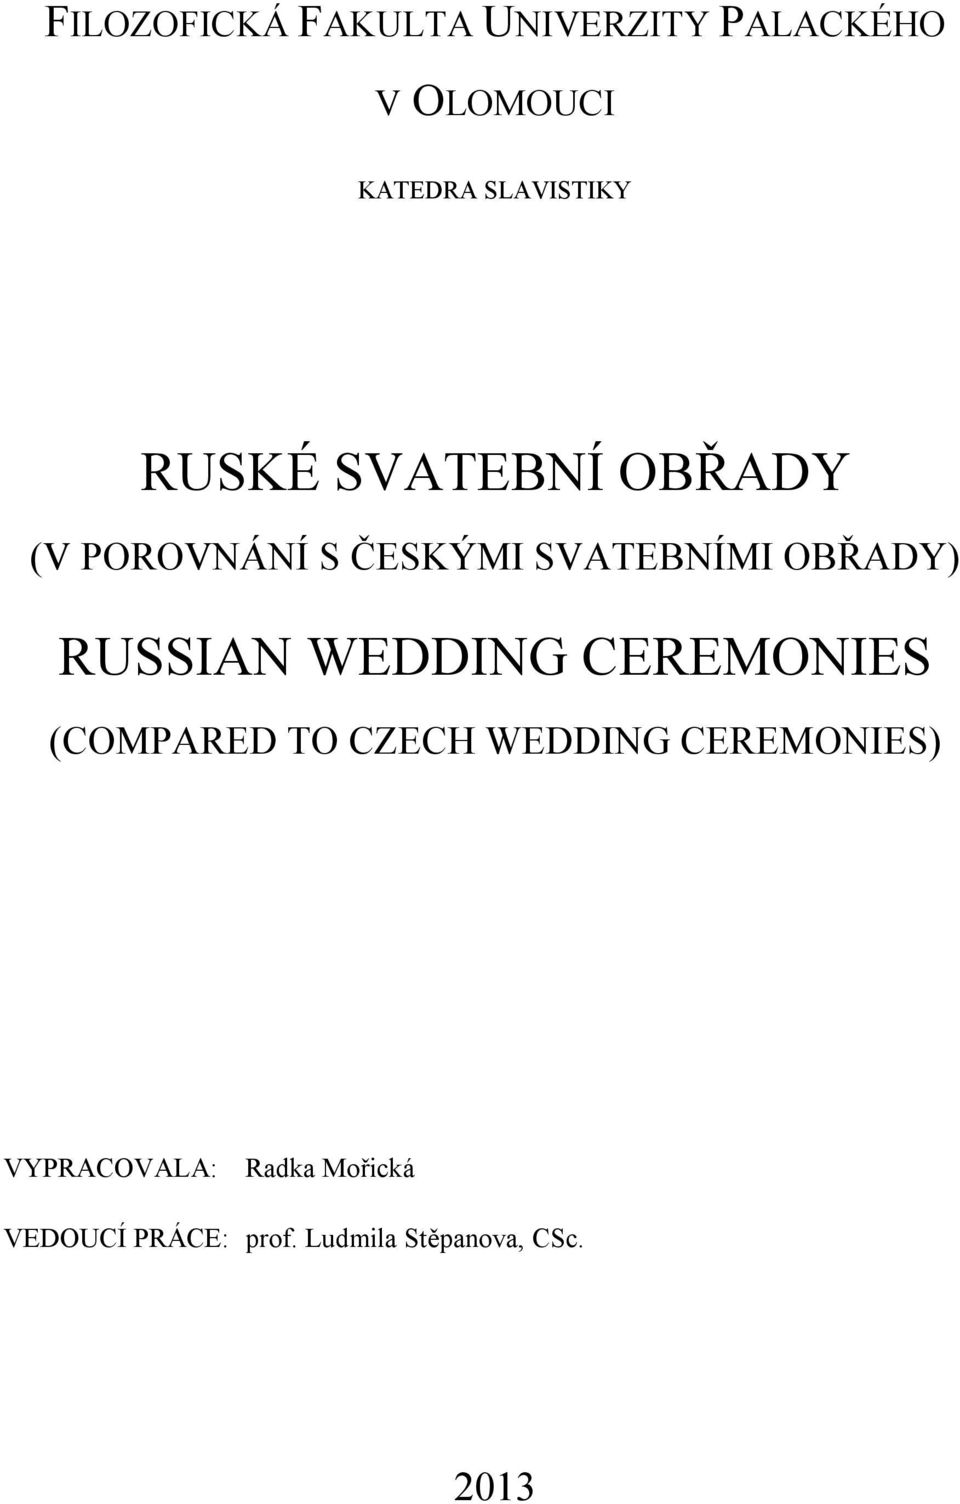 OBŘADY) RUSSIAN WEDDING CEREMONIES (COMPARED TO CZECH WEDDING